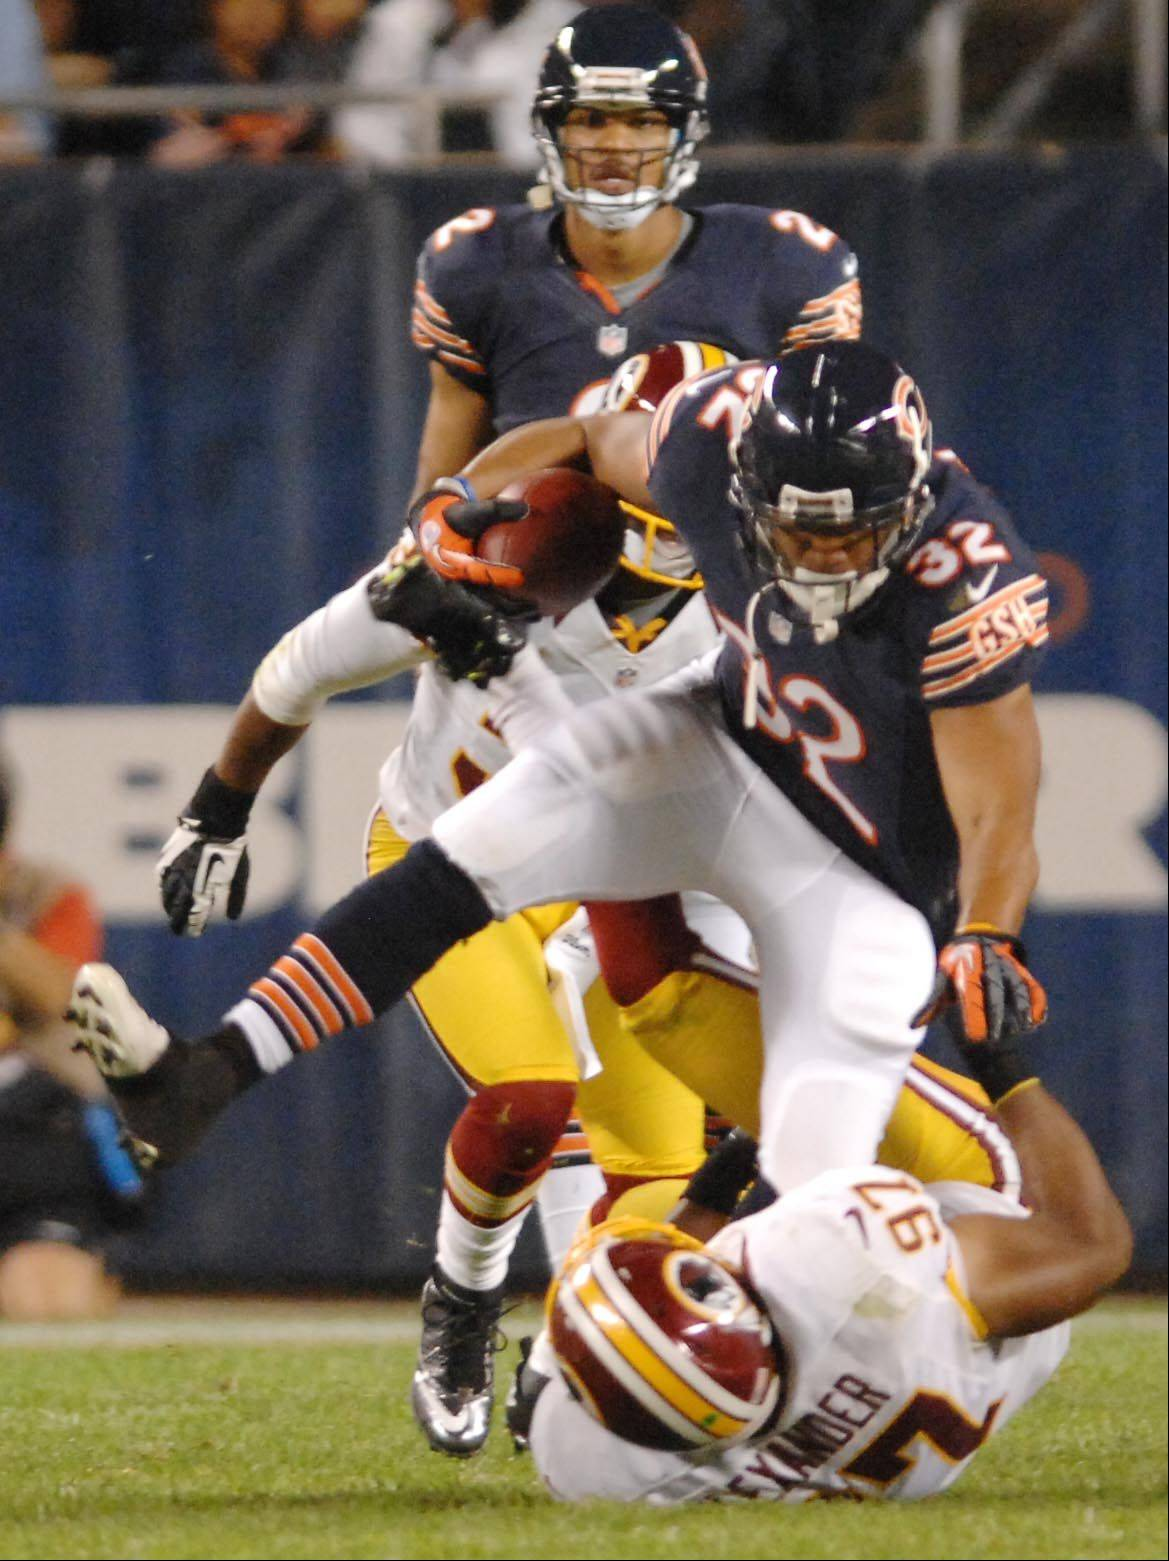 Chicago Bears running back Kahlil Bell is pulled down by Washington Redskins linebacker Lorenzo Alexander Saturday in the second preseason game at Soldier Field in Chicago.